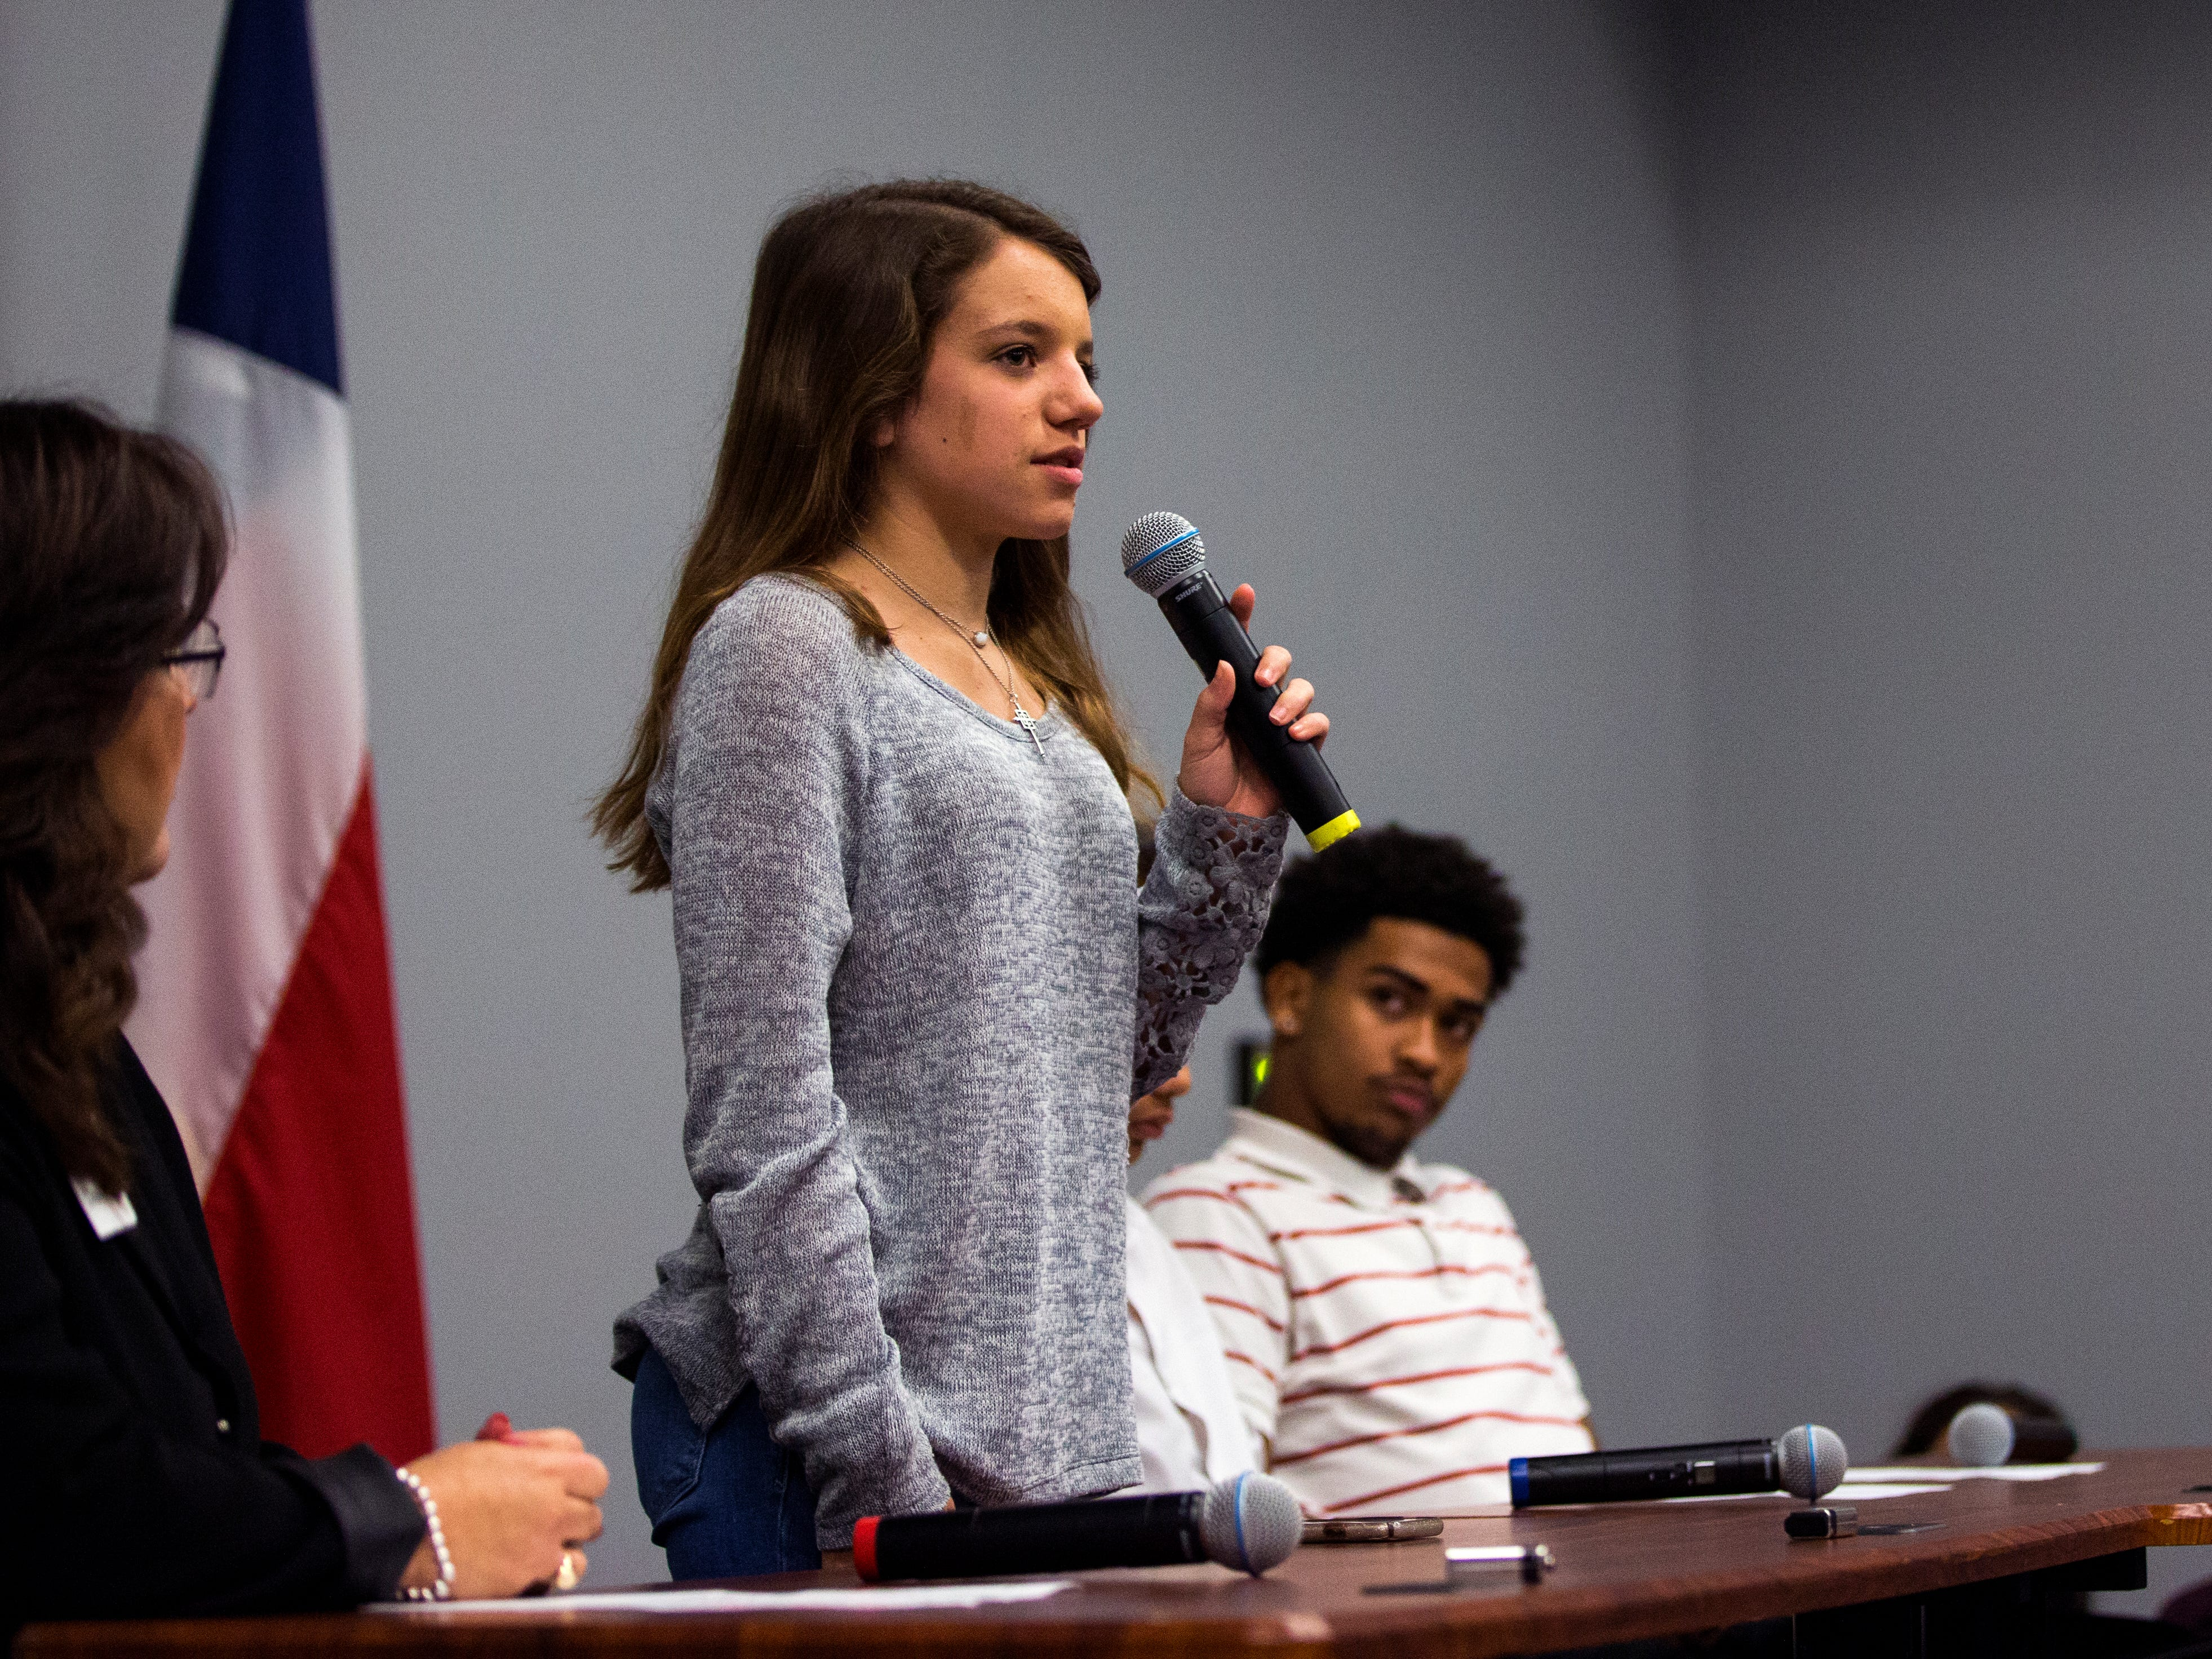 Cissy Reynolds-Perez (from left), assistant superintendent at West Oso Independent School District, Ashlyn Clark, a 9th grader at Veterans Memorial High School, and Malachi Florez a 9th grader at West Oso High School, participate in a panel on suicide prevention and schools at the Del Mar Center for Economic Development on Monday, December 17, 2018. It was part of a daylong seminar held by State Rep. Todd Hunter that covered the 86th legislative session and how human trafficking and suicide prevention will fit into the session.